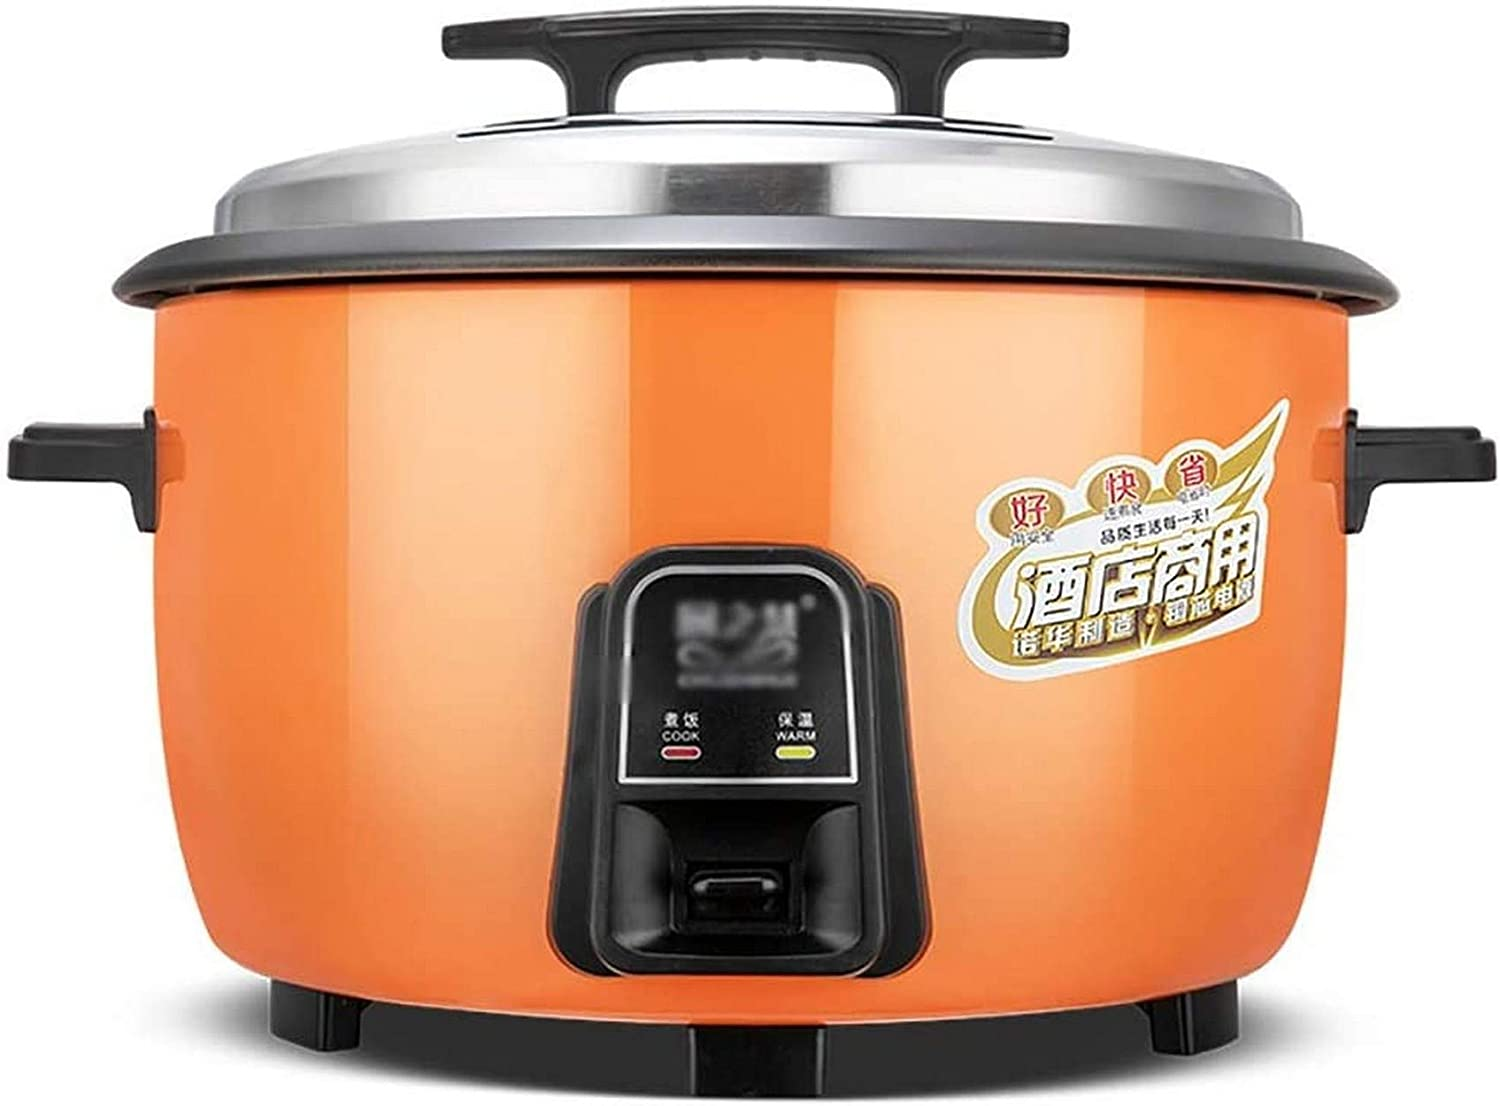 XH&XH Rice Cooker Large Capacity 8-60 People Canteen Hotel Commercial Hotel Home Large Old-Fashioned Rice Cooker 8-36L (Size: 28L-3500W)